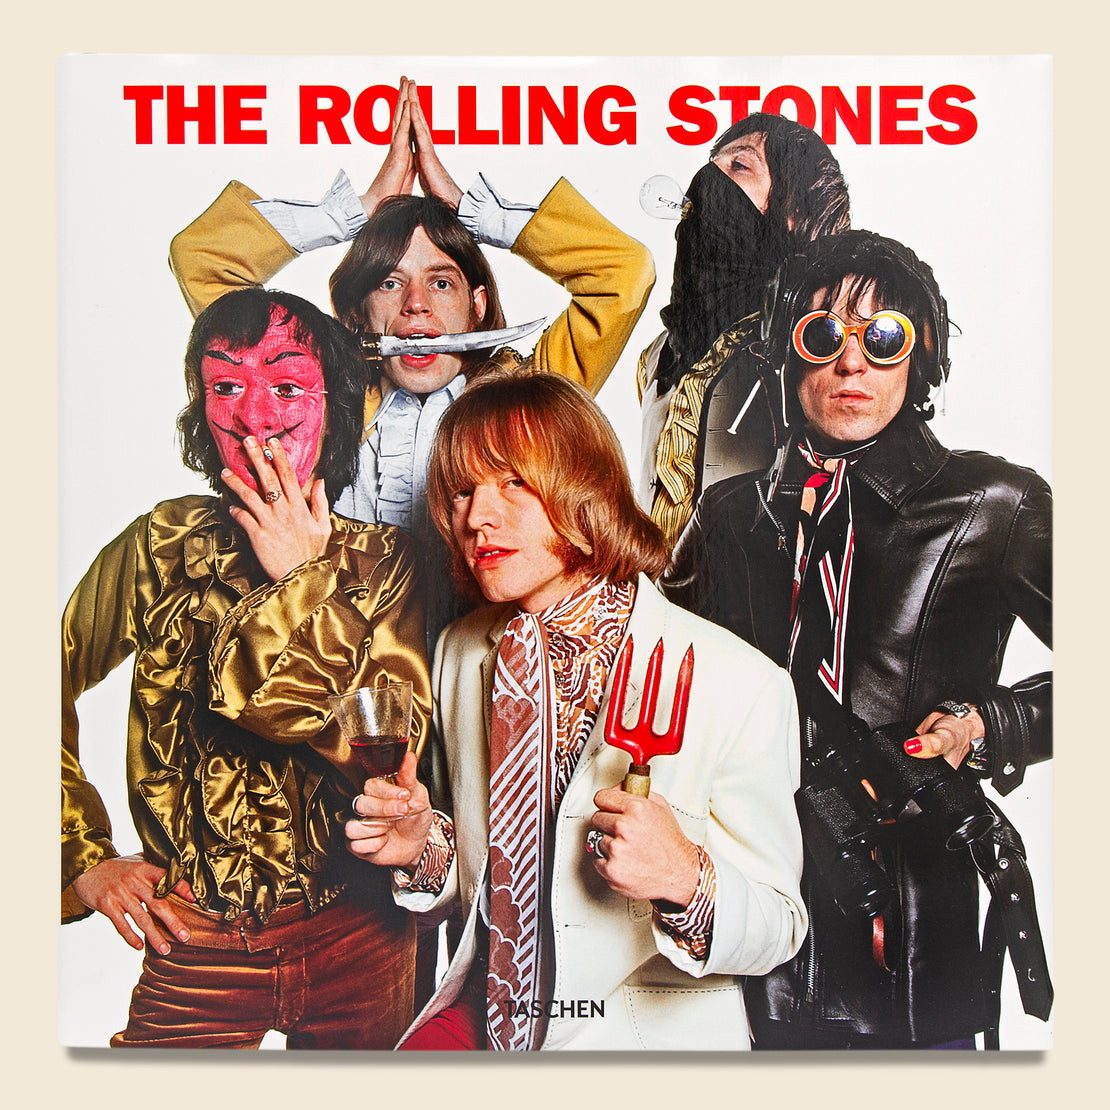 Bookstore The Rolling Stones, Updated Edition - Reuel Golden